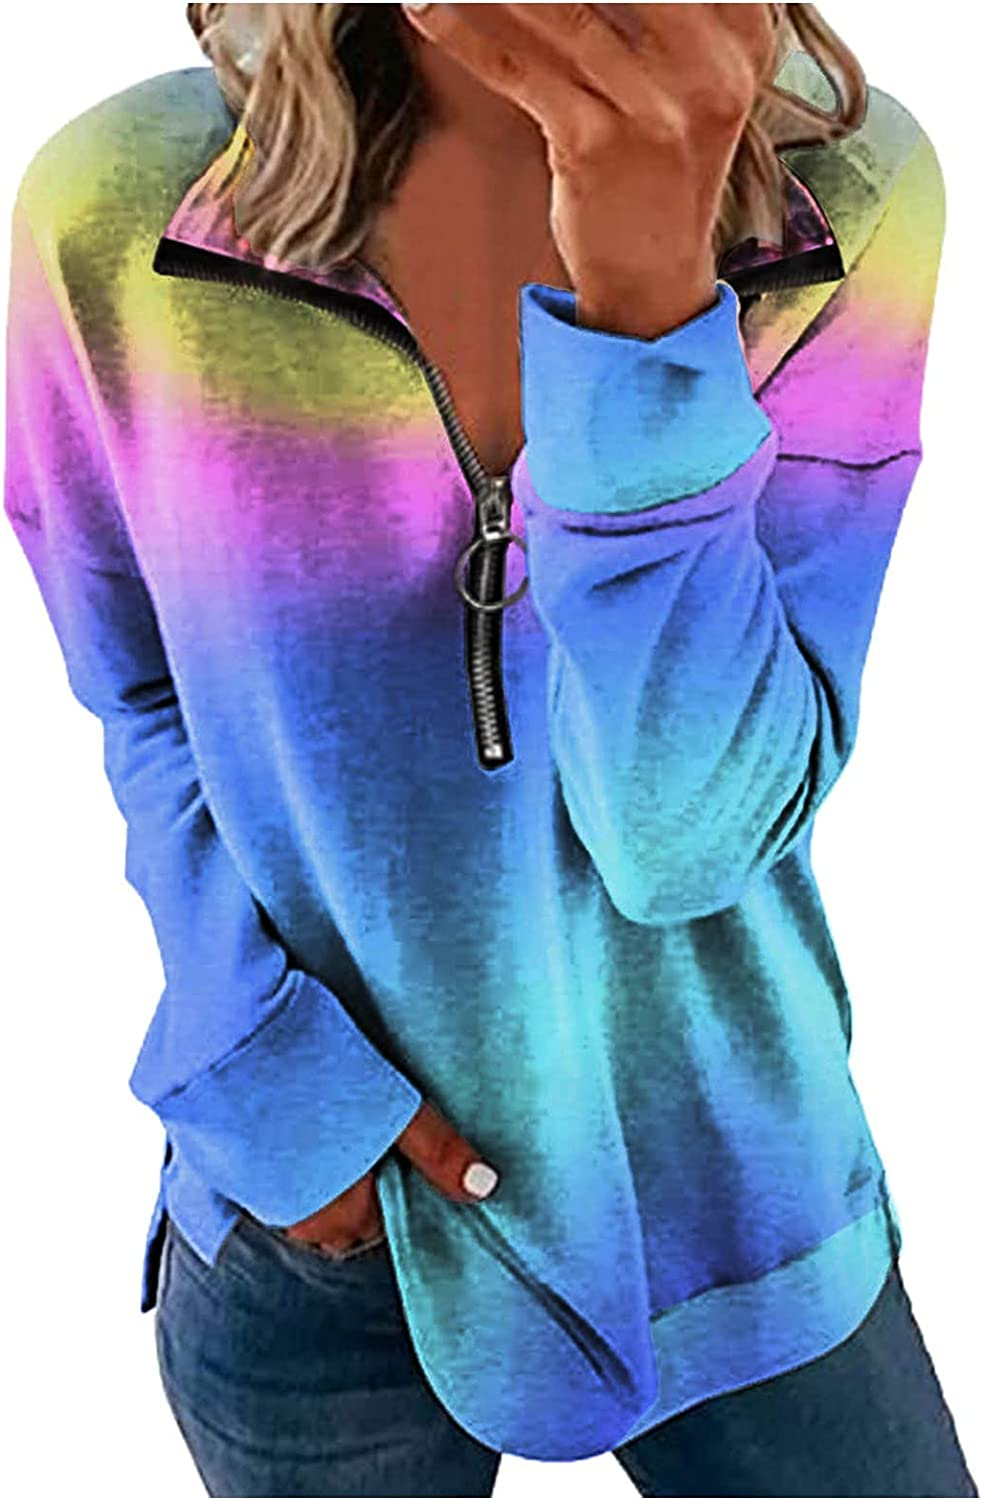 VonVonCo Pullover Sweaters for Women Casual Fashion Gradient Loose Print Sweatshirt Zipper Lapel Long Sleeve Tops Blouses